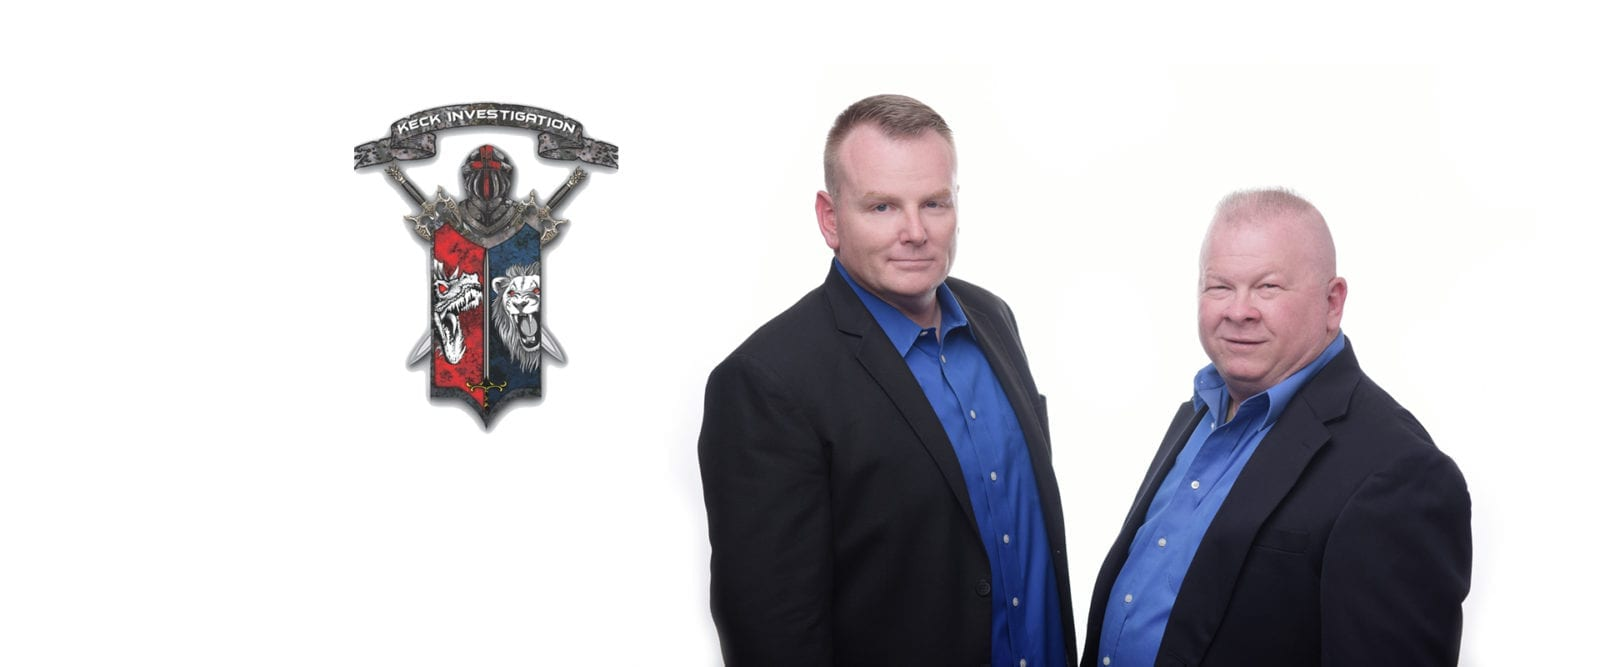 David Keck & Mark Lynn | Private Investigators | Keck Investigation Service, LLC